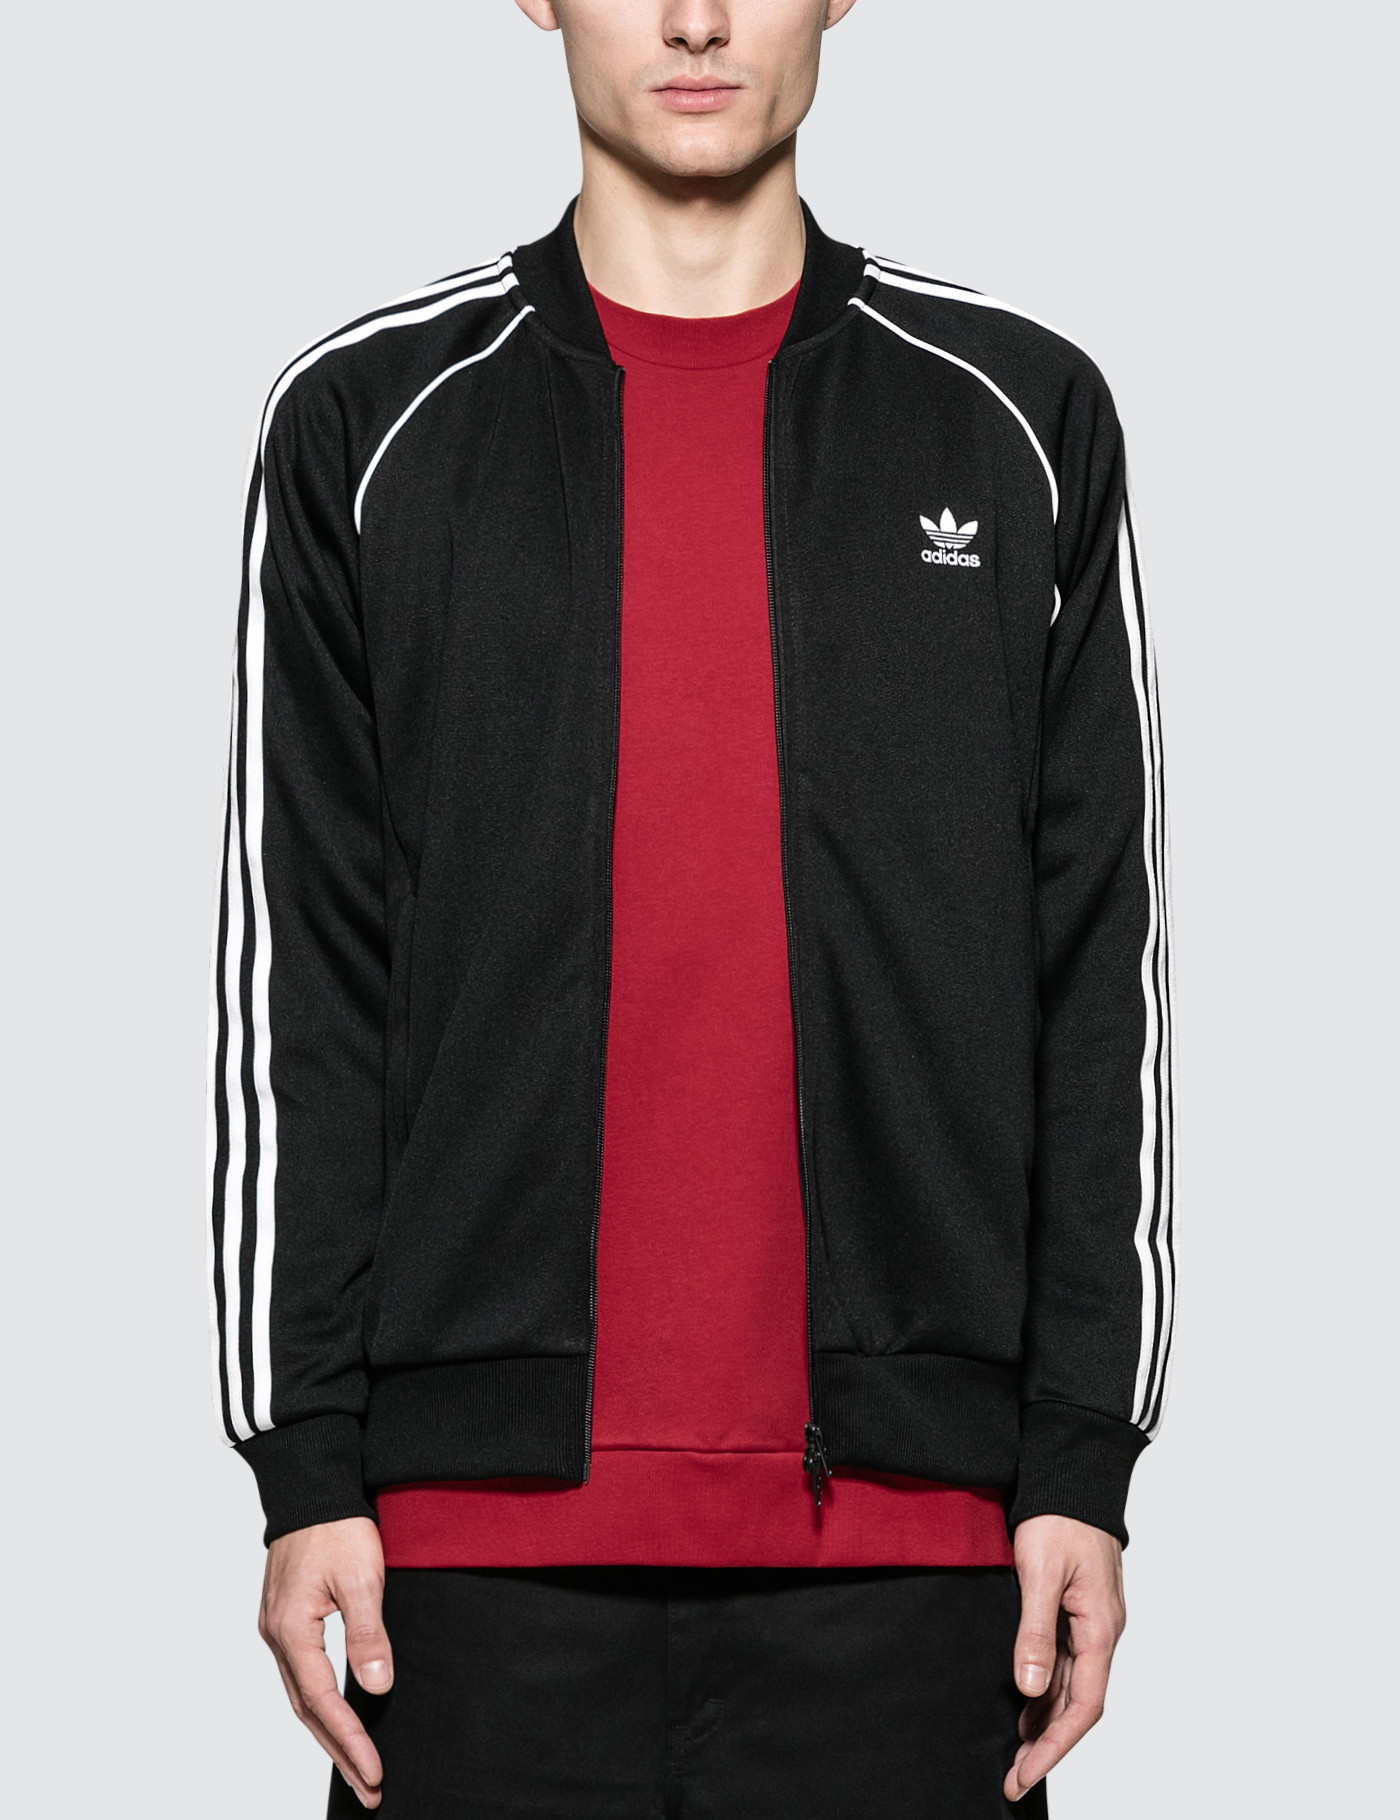 5b2f0862d801c5 Adidas Originals Superstar Track Jacket  Adidas Originals Superstar Track  Jacket ...